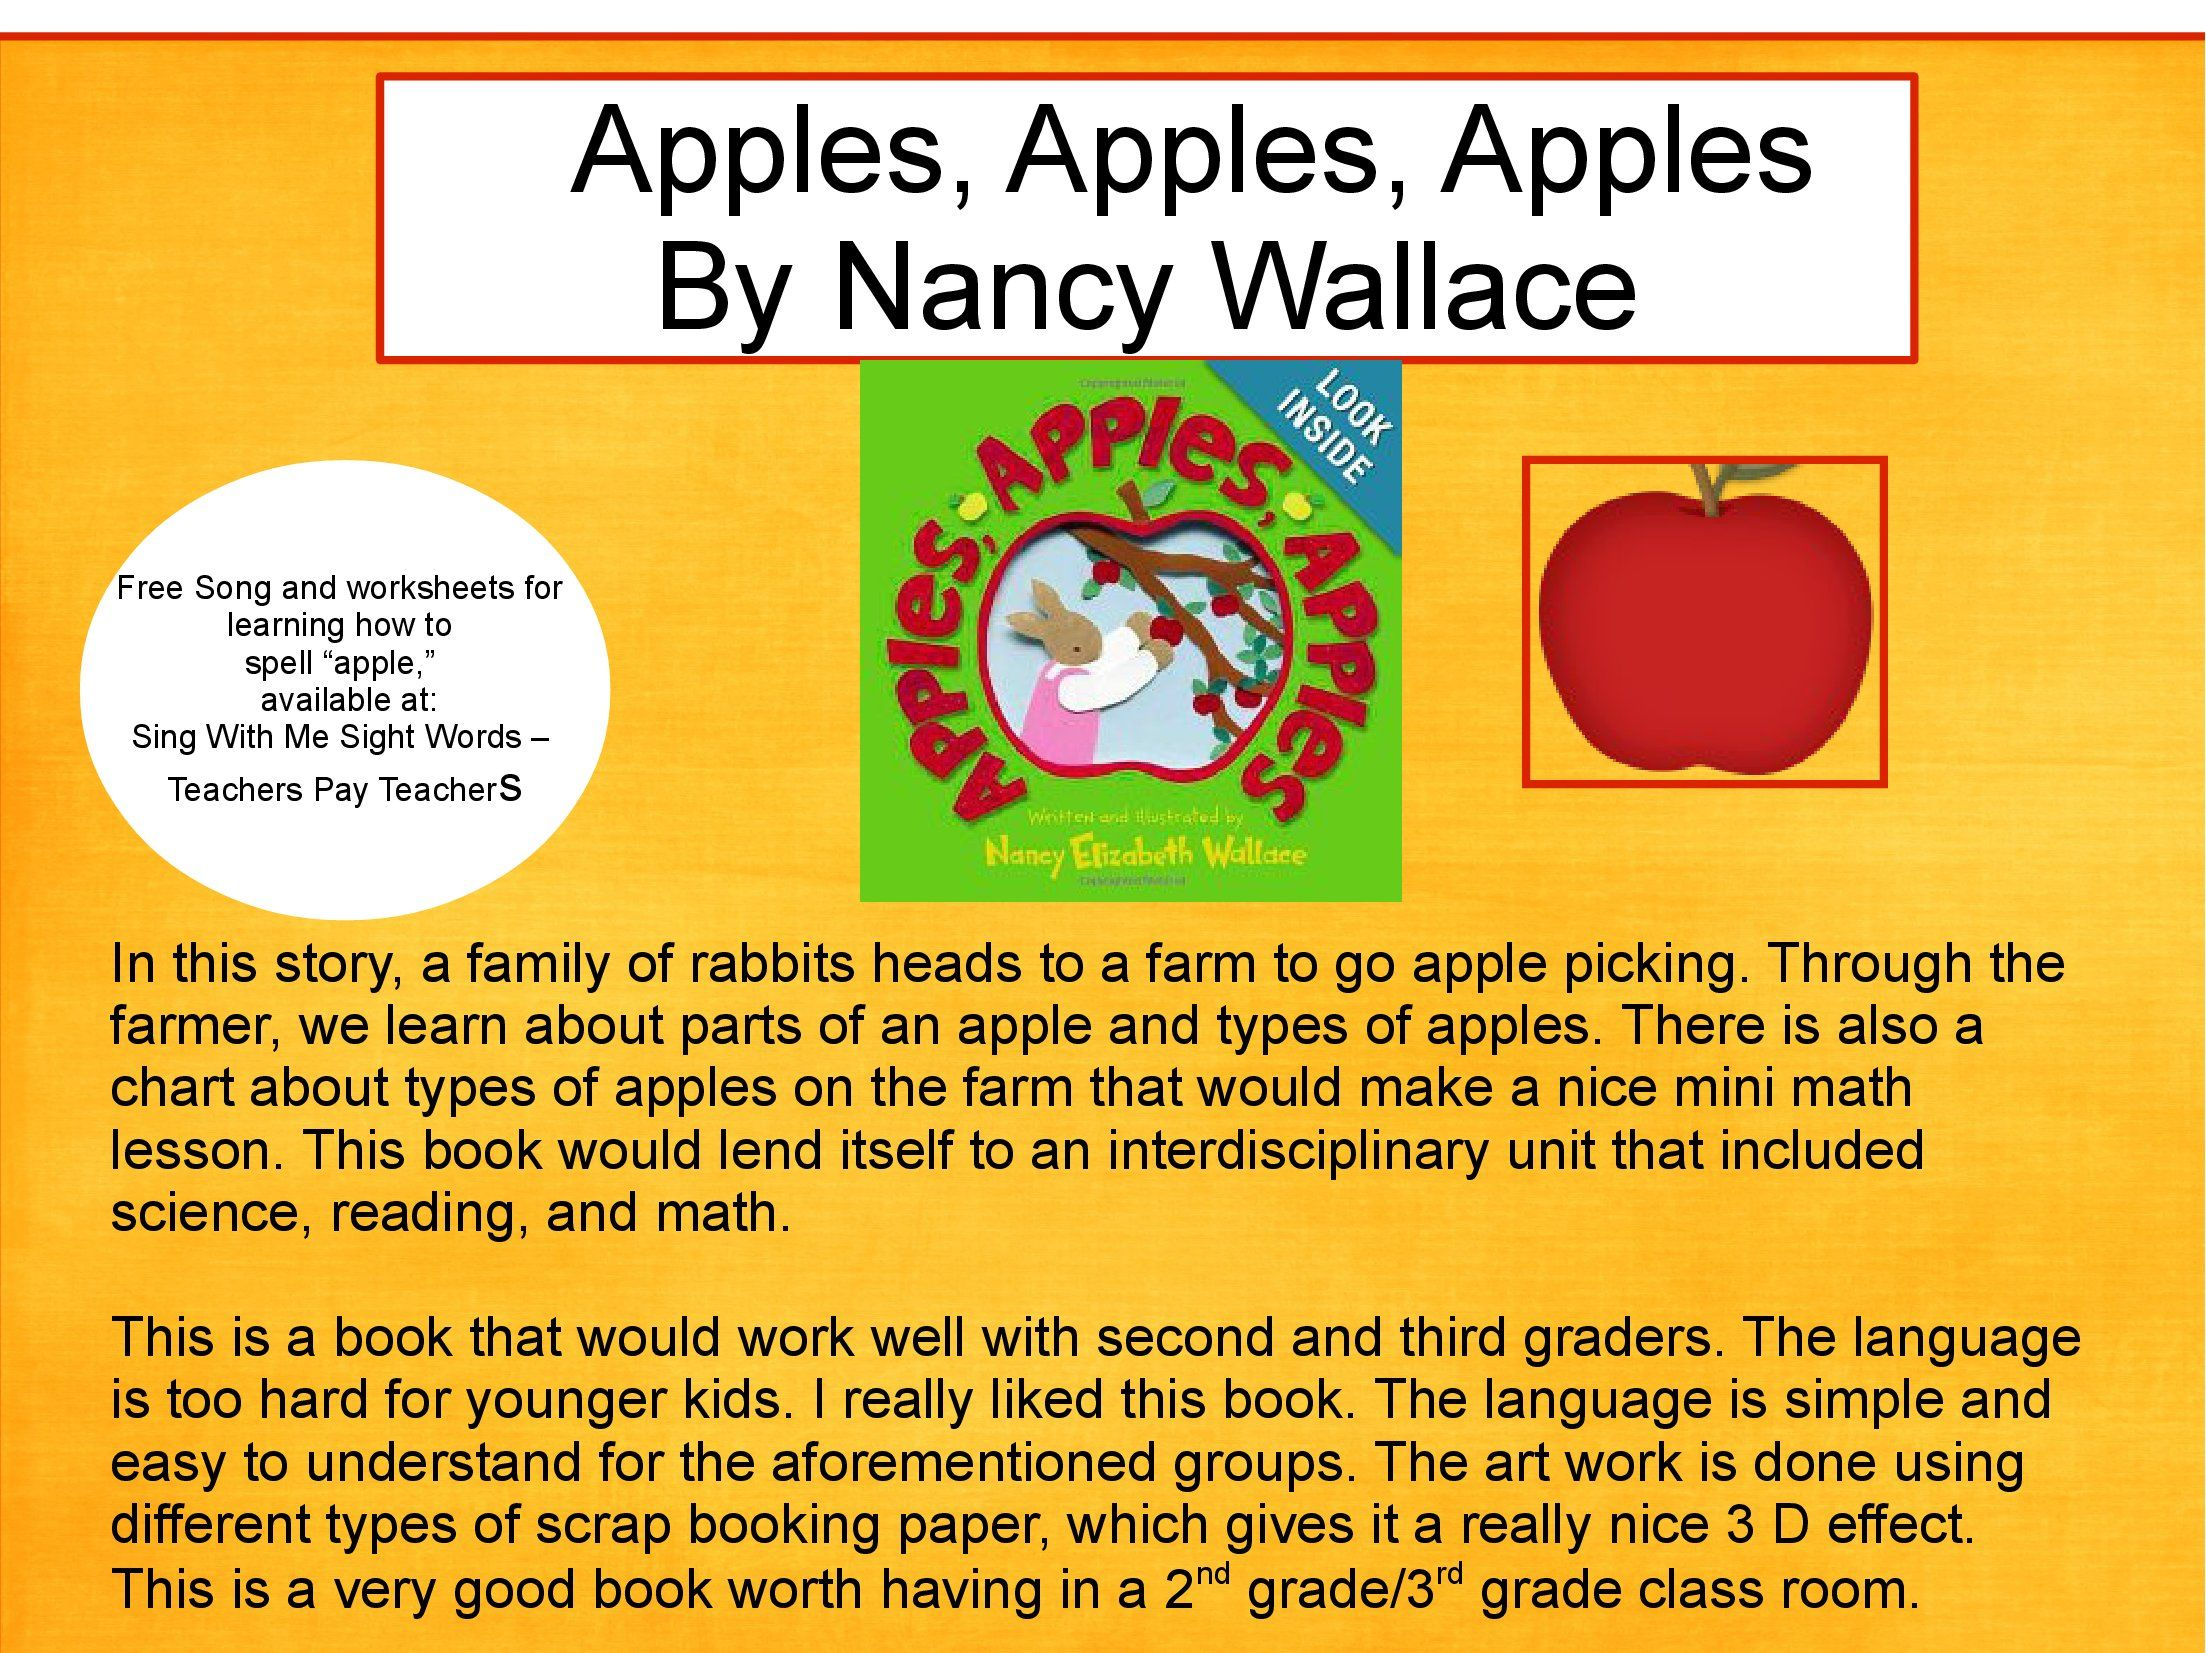 Book About Apple Picking For 2nd 3rd Grade